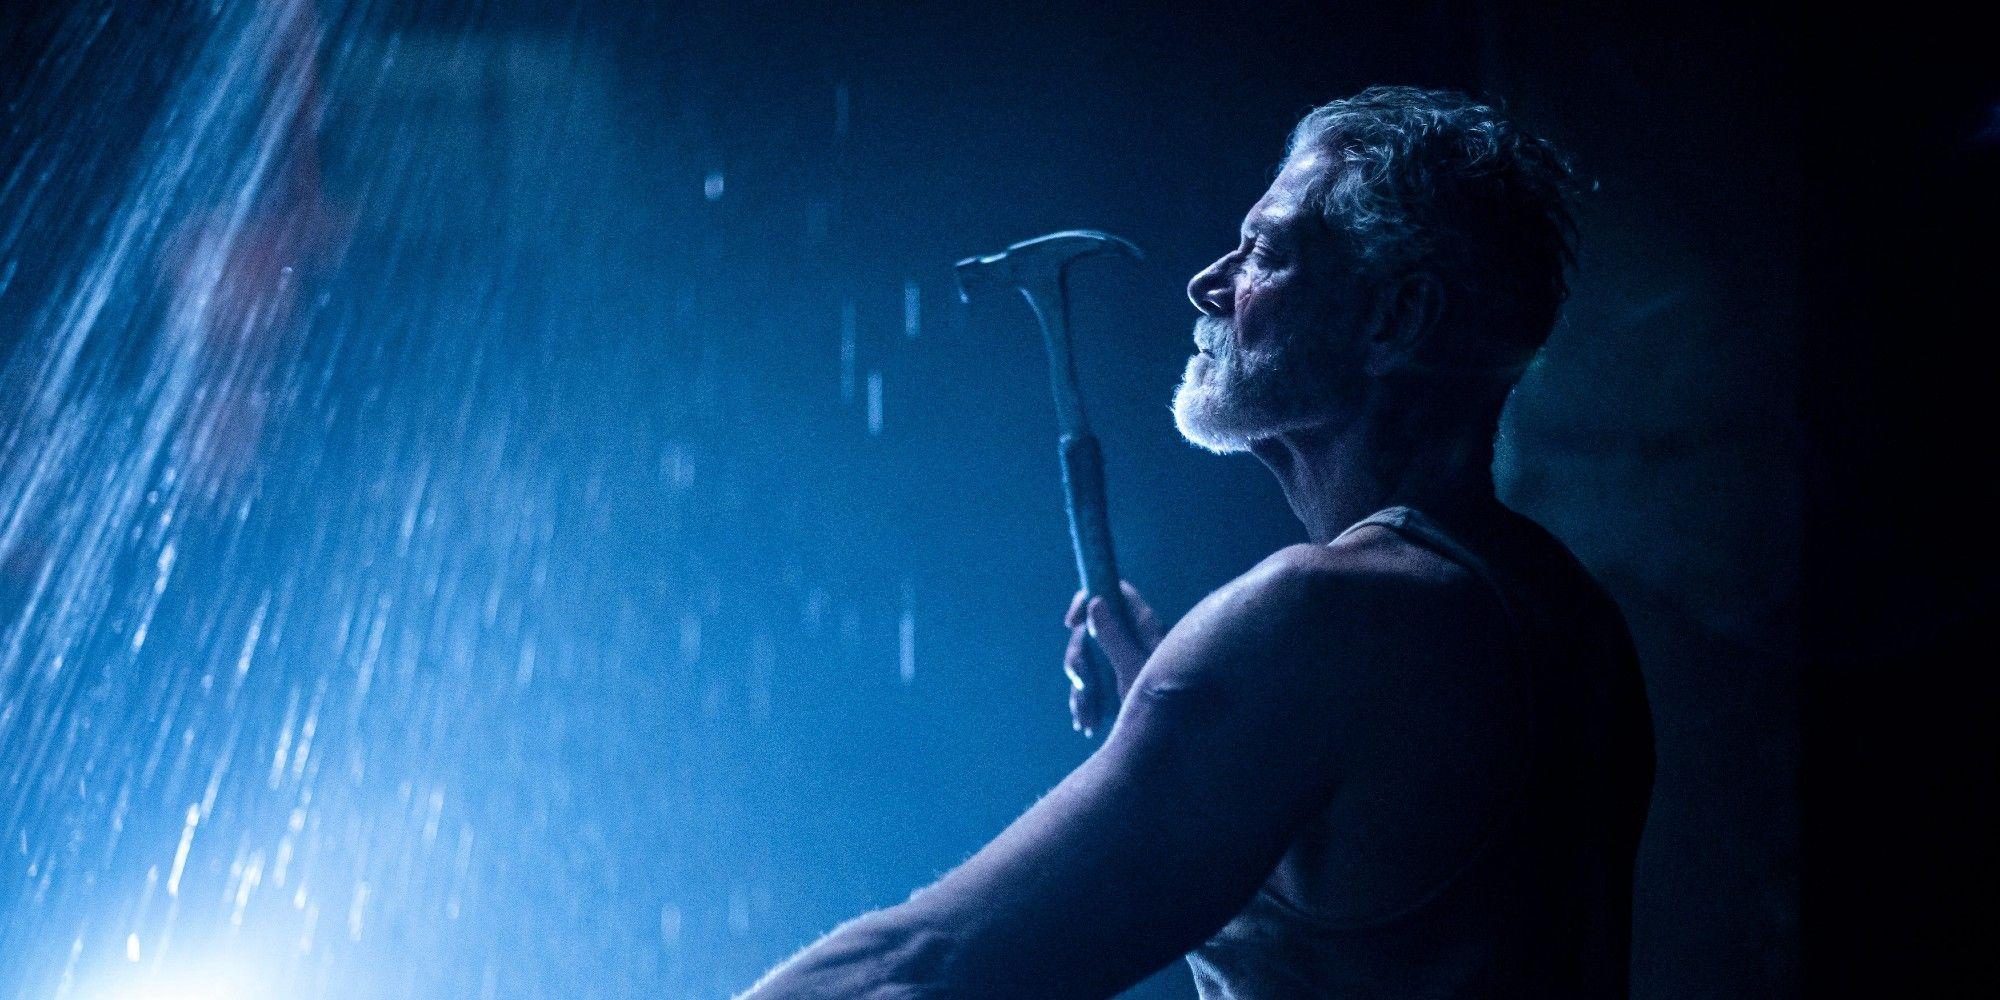 Don't Breathe 2 Image Reveals First Look At Stephen Lang's Return